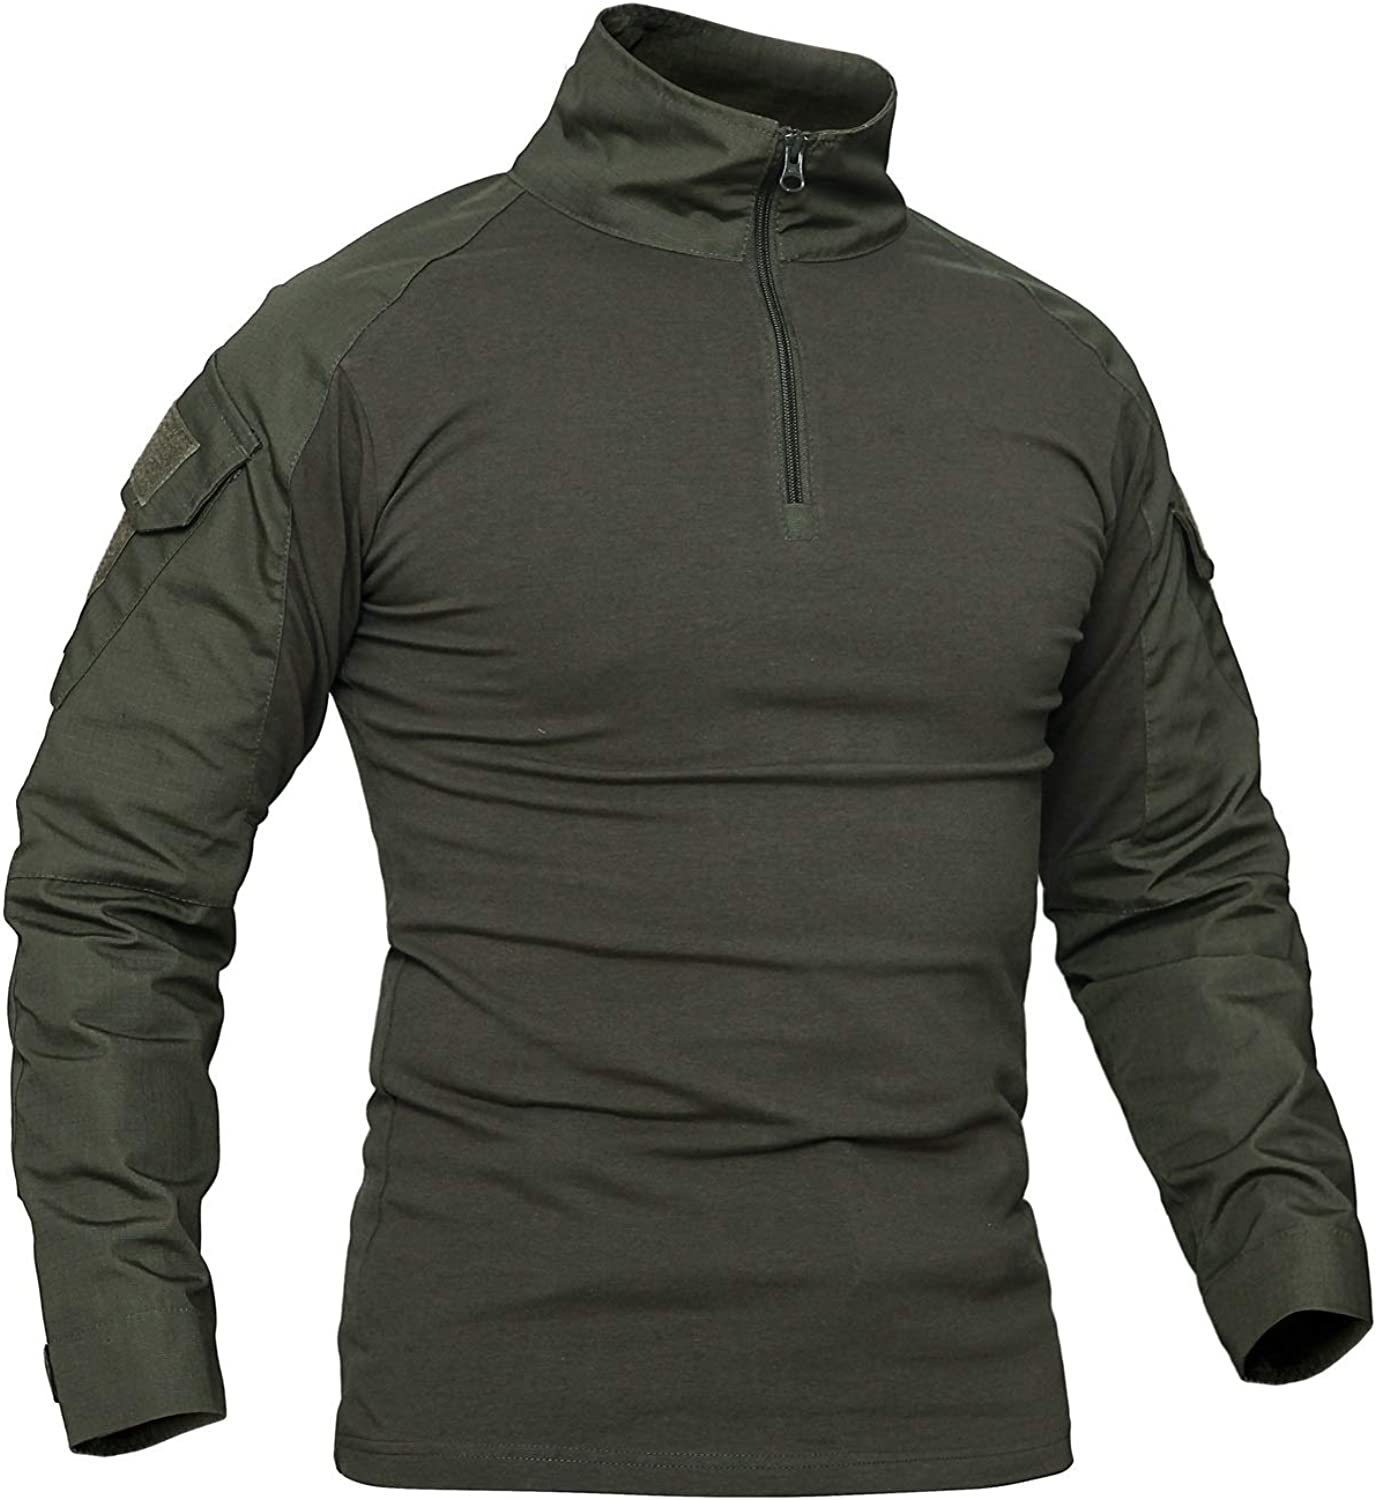 Shanghai Story Men's Max 90% OFF Military Tactical Camouflage Long Sleeve Ar Large-scale sale